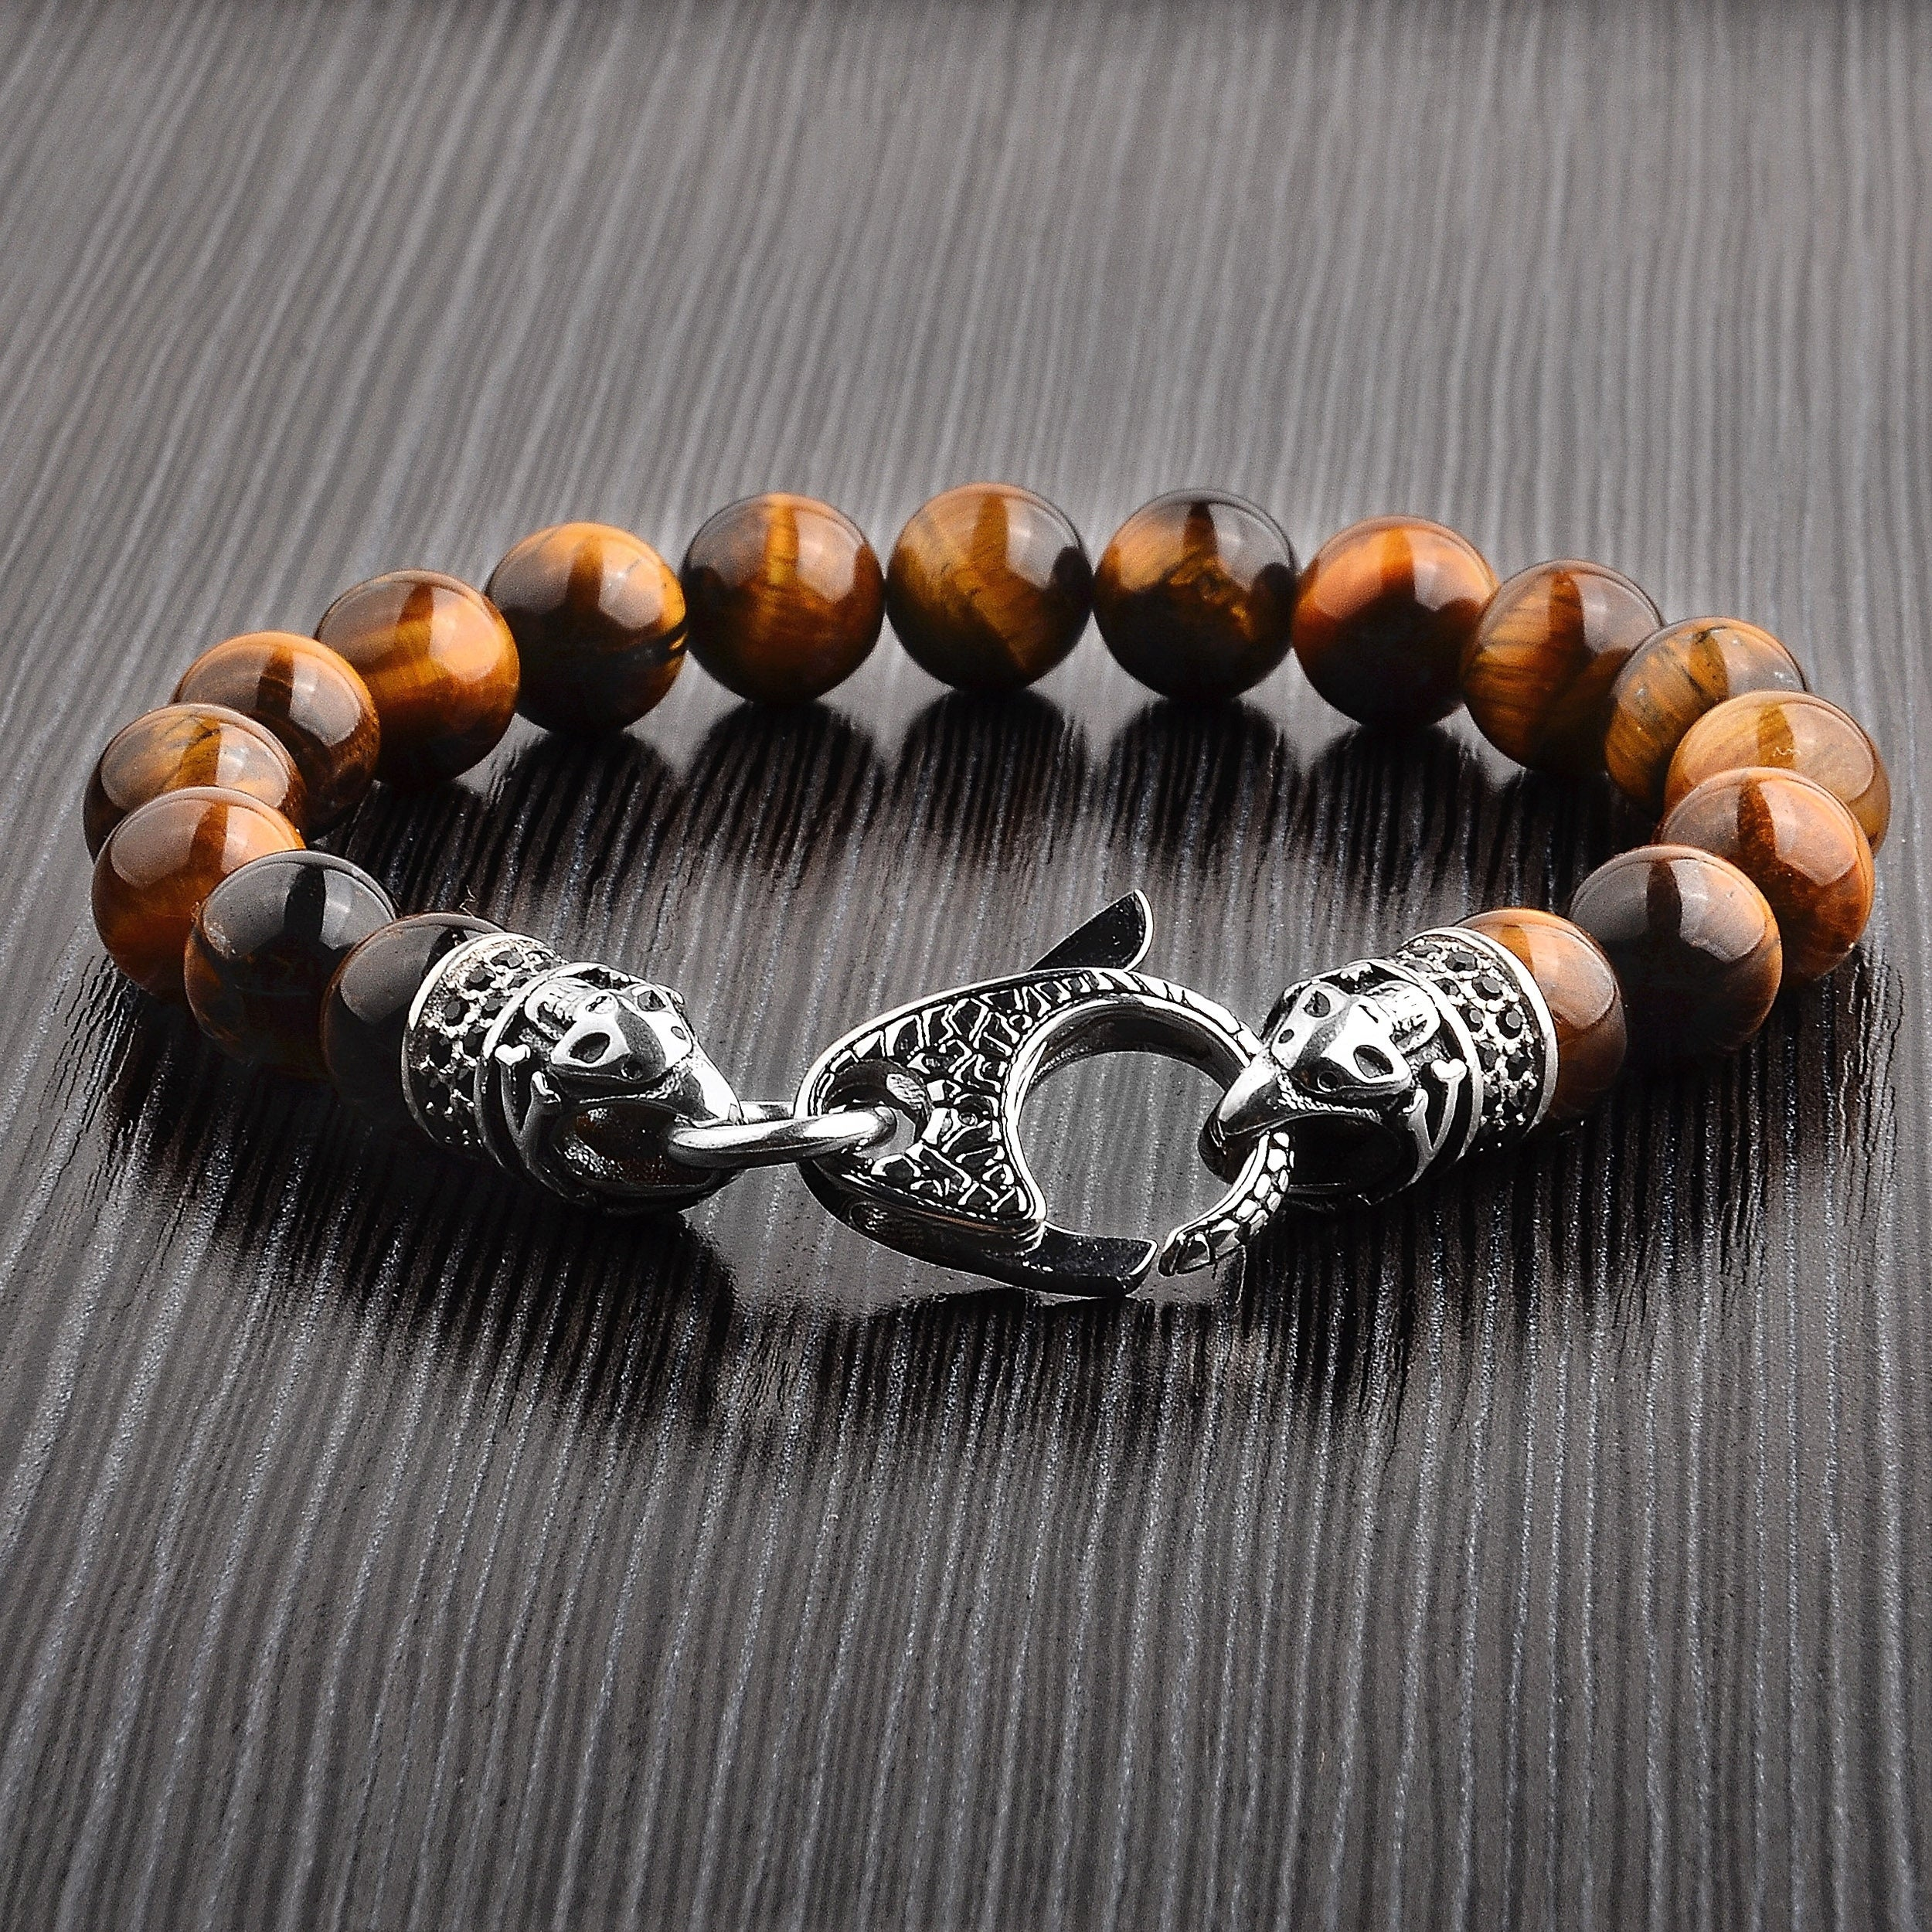 hints women prayerful bracelet products bead stone img plain winner s for natural